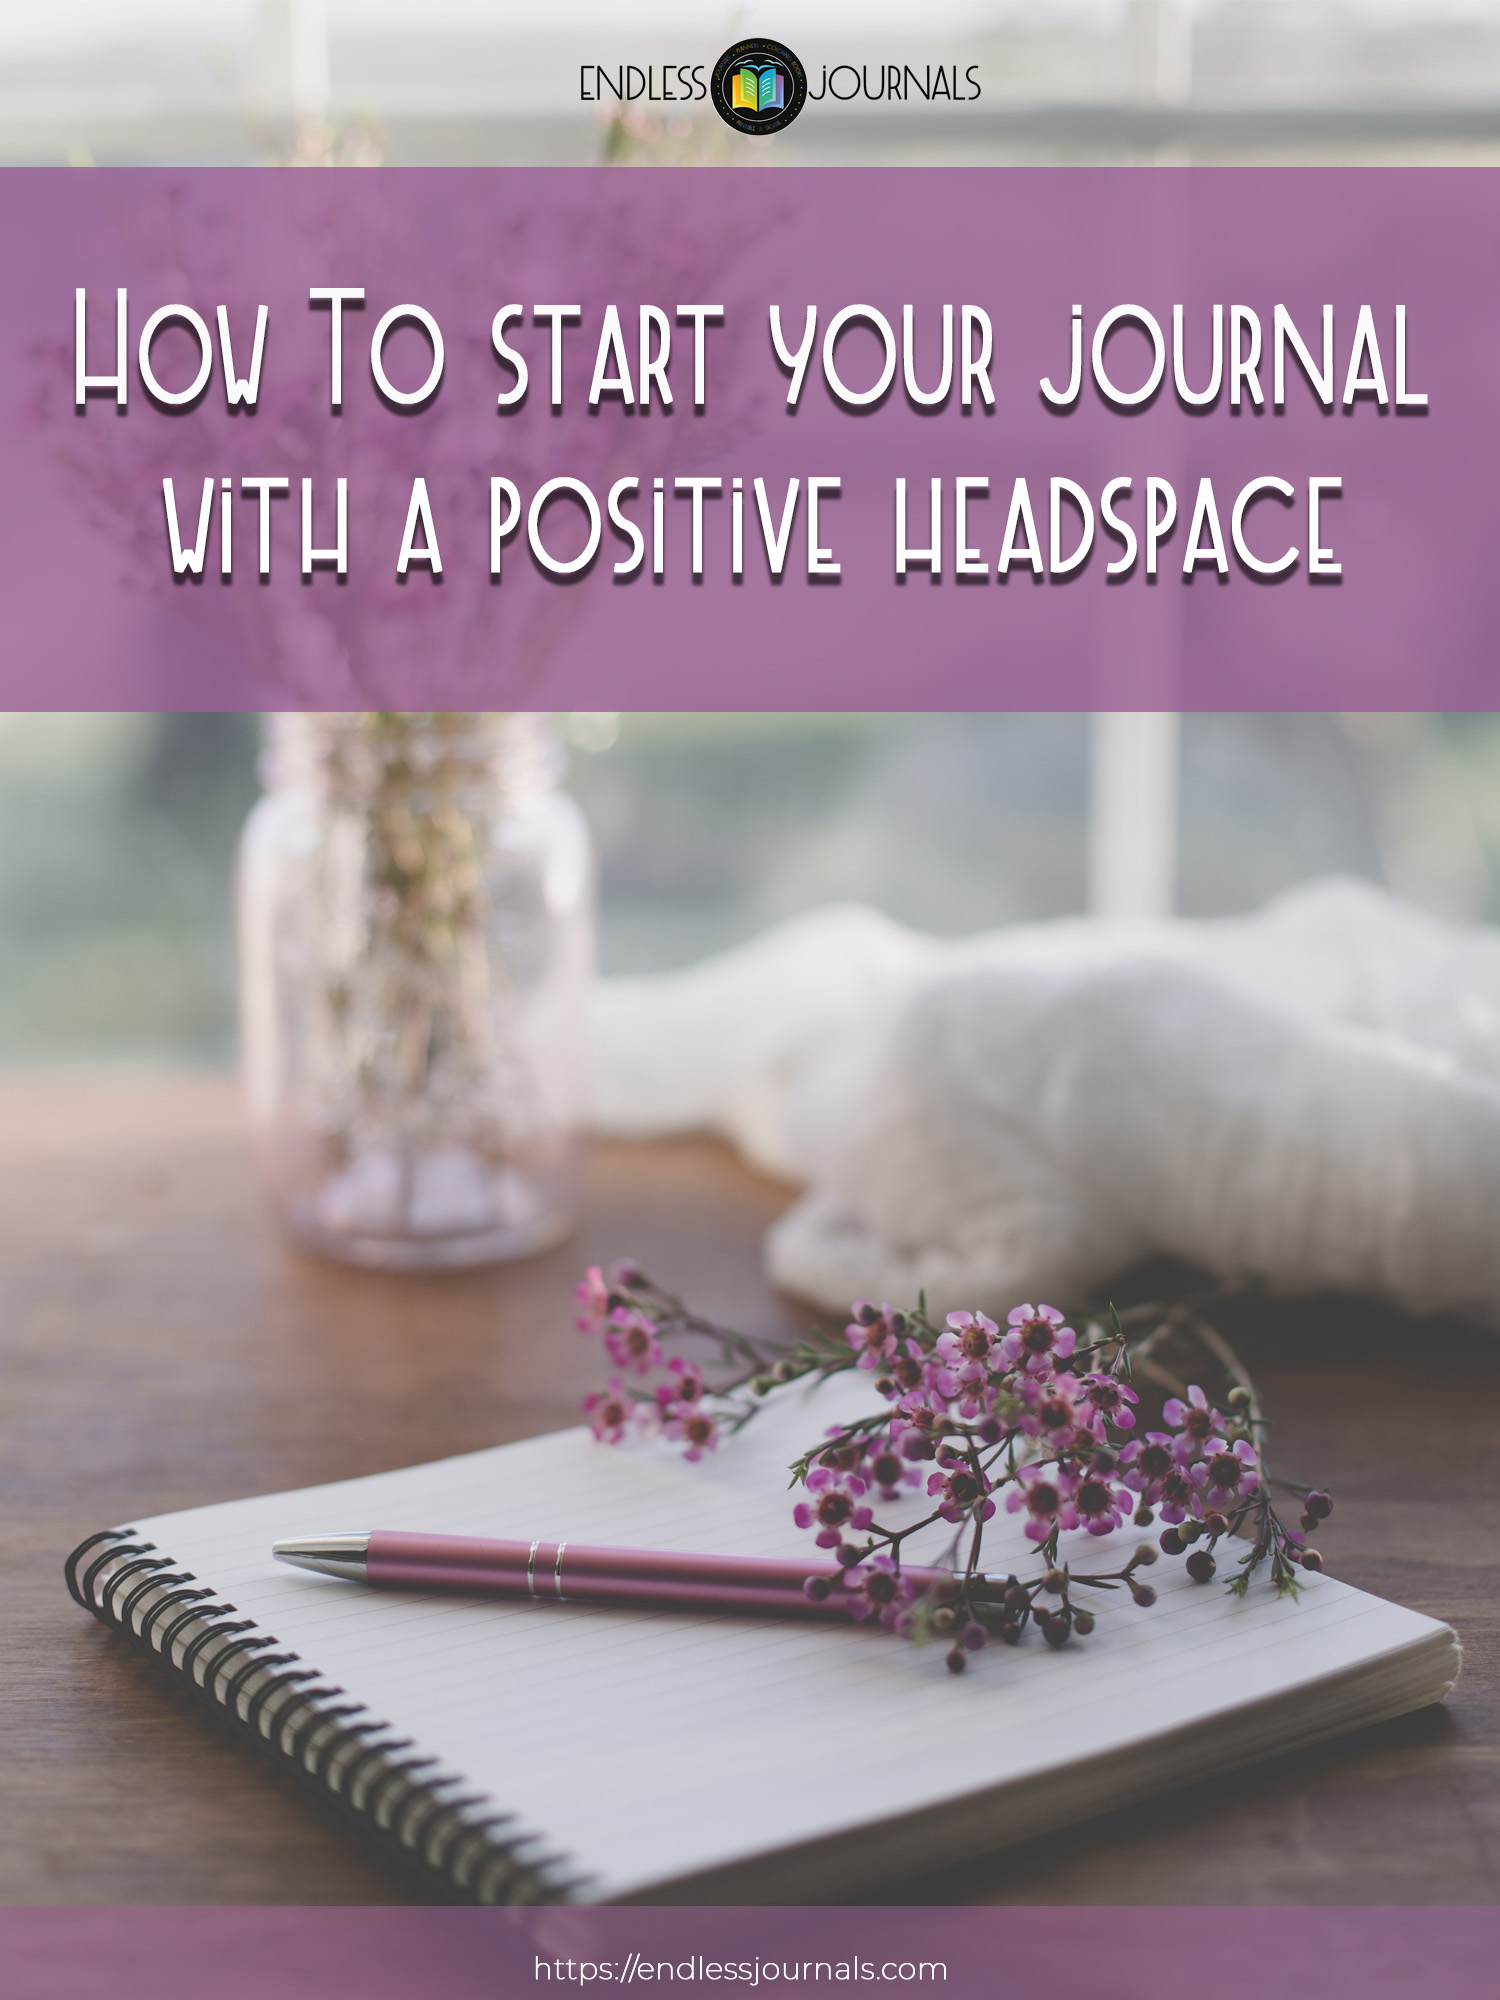 How to start your journal with a positive Headspace